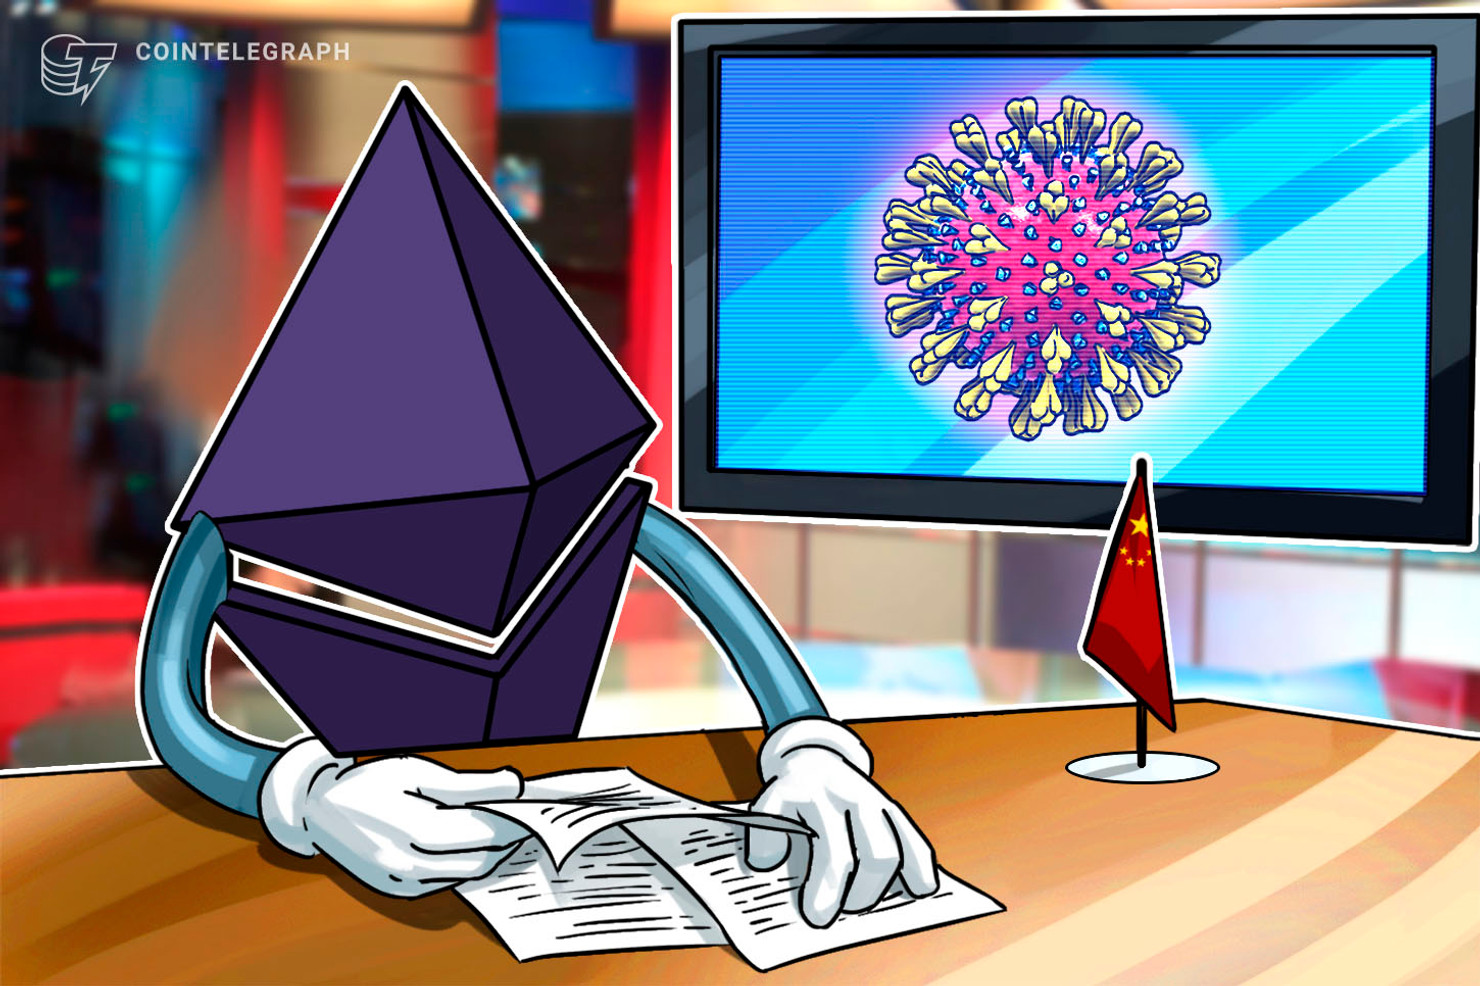 Chinese Journalist Shares Report on COVID-19 on Ethereum, Bypassing Censor